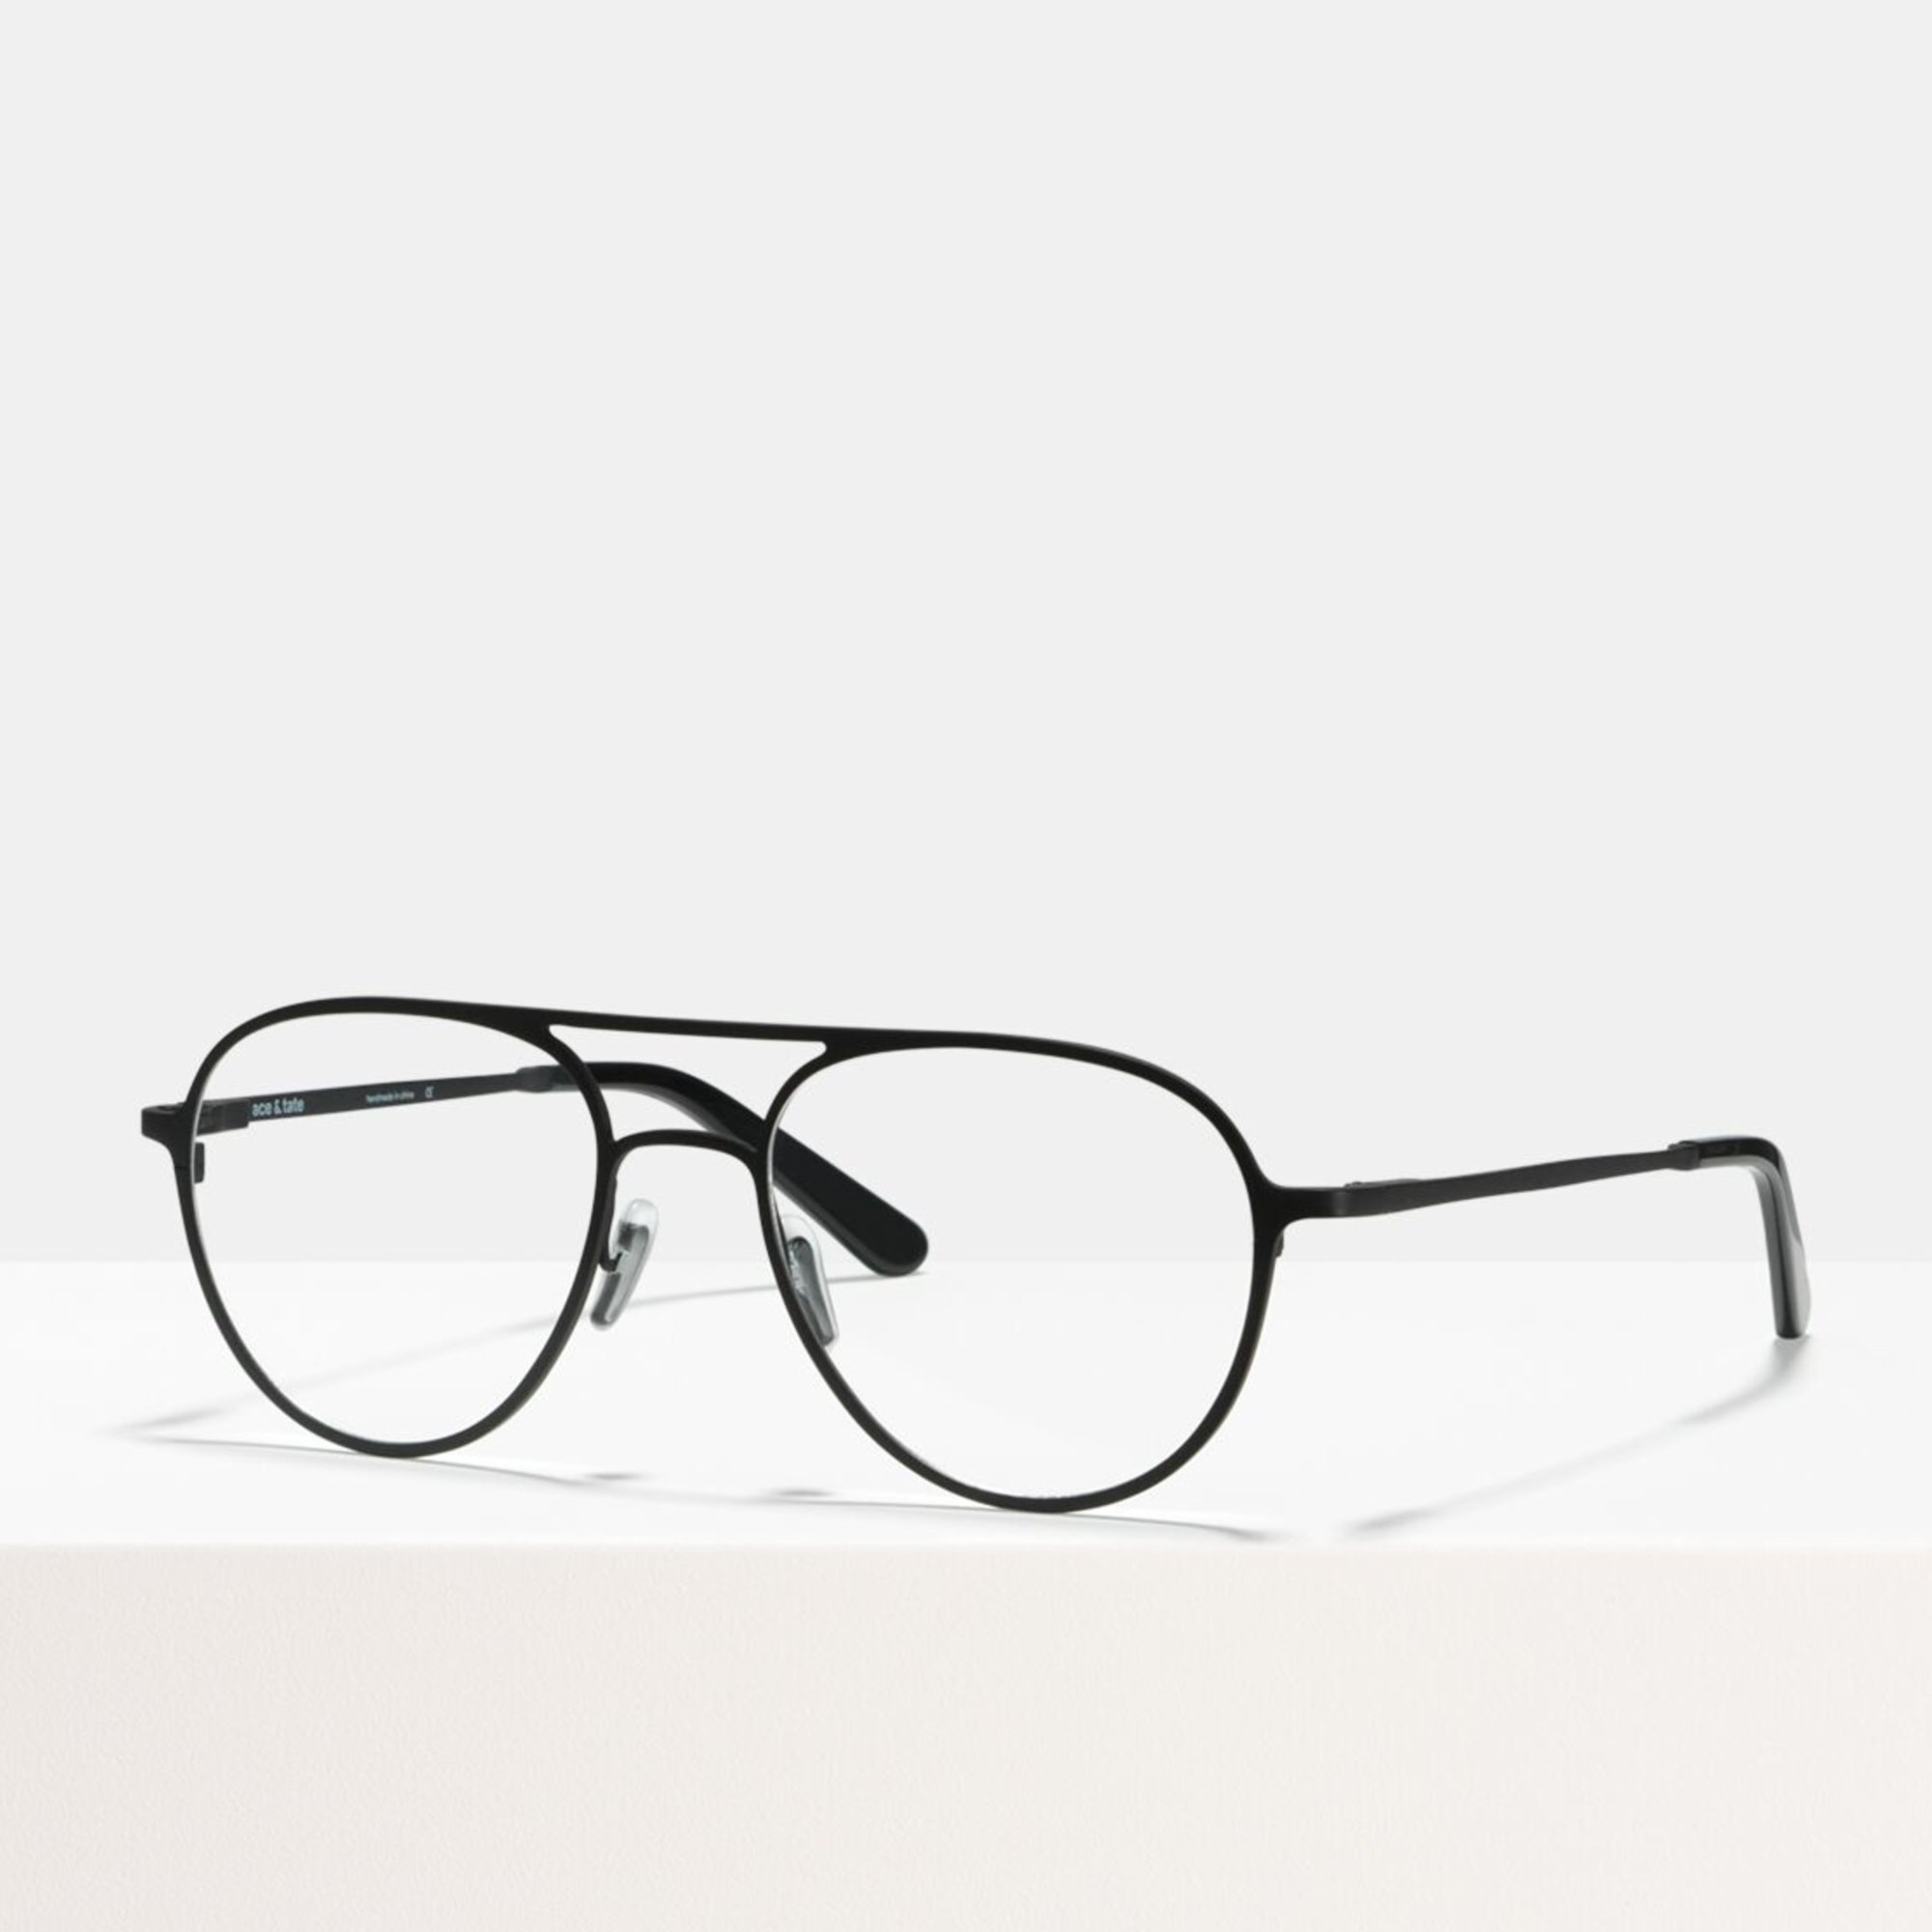 Ace & Tate Glasses |  Metall in Schwarz